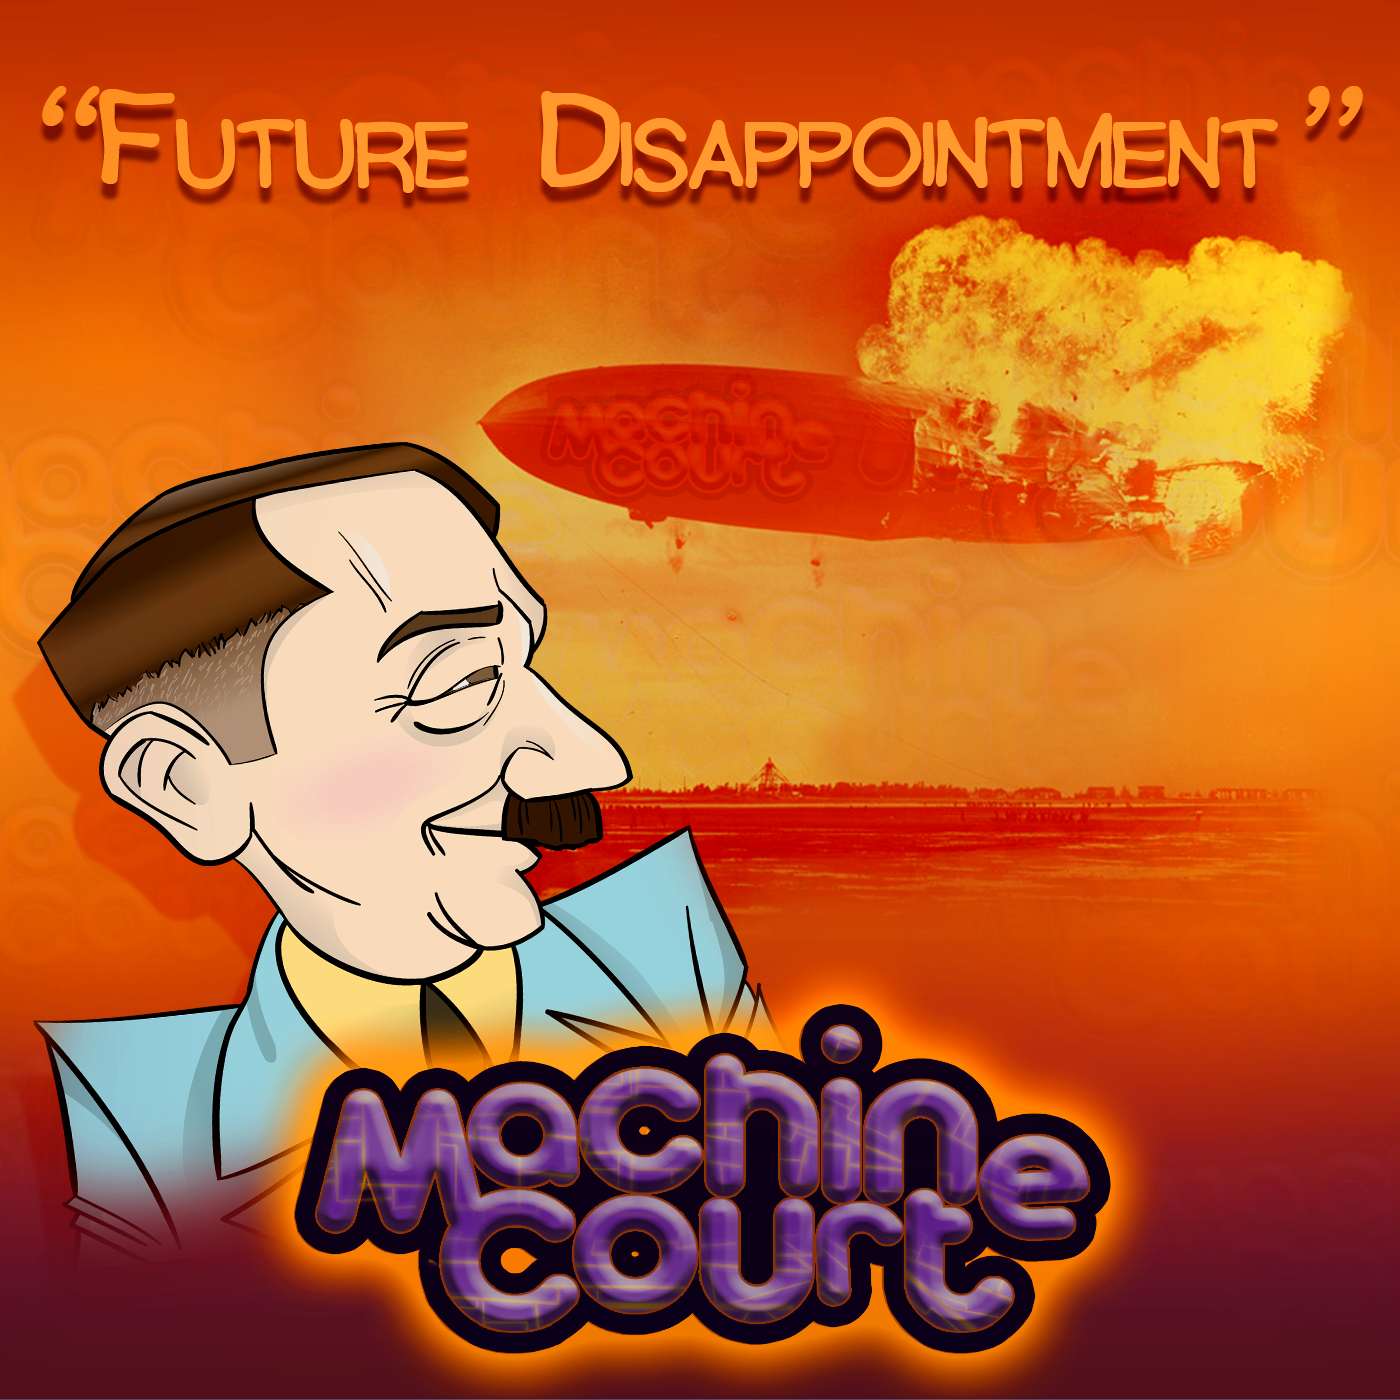 """2.7 """"Future Disappointment"""""""